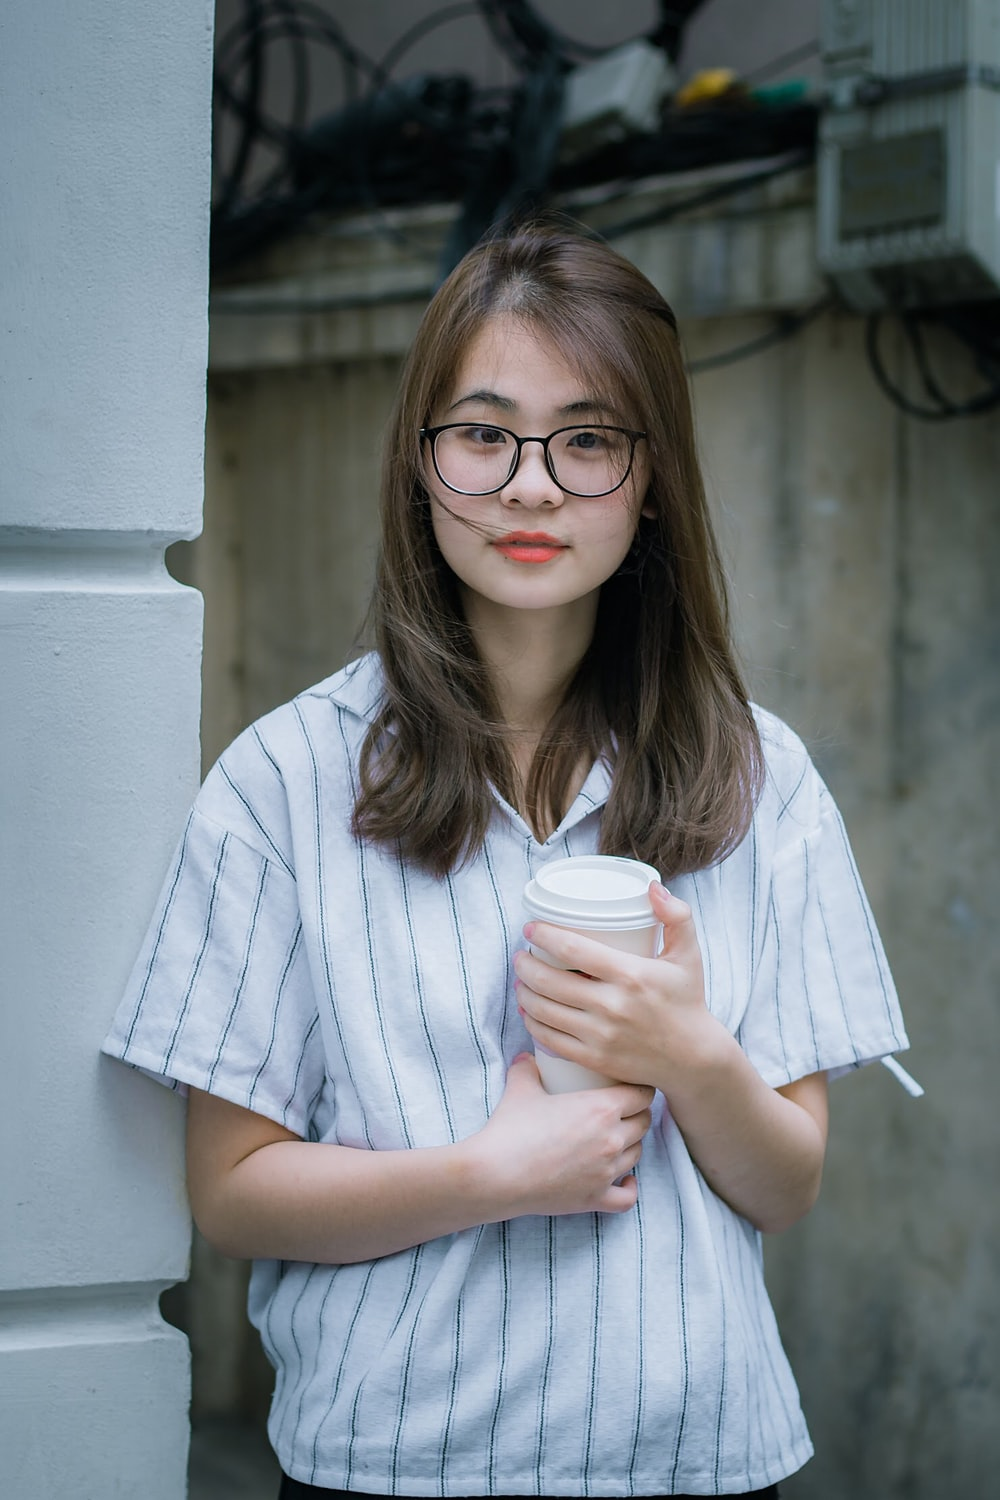 woman holding cup beside wall